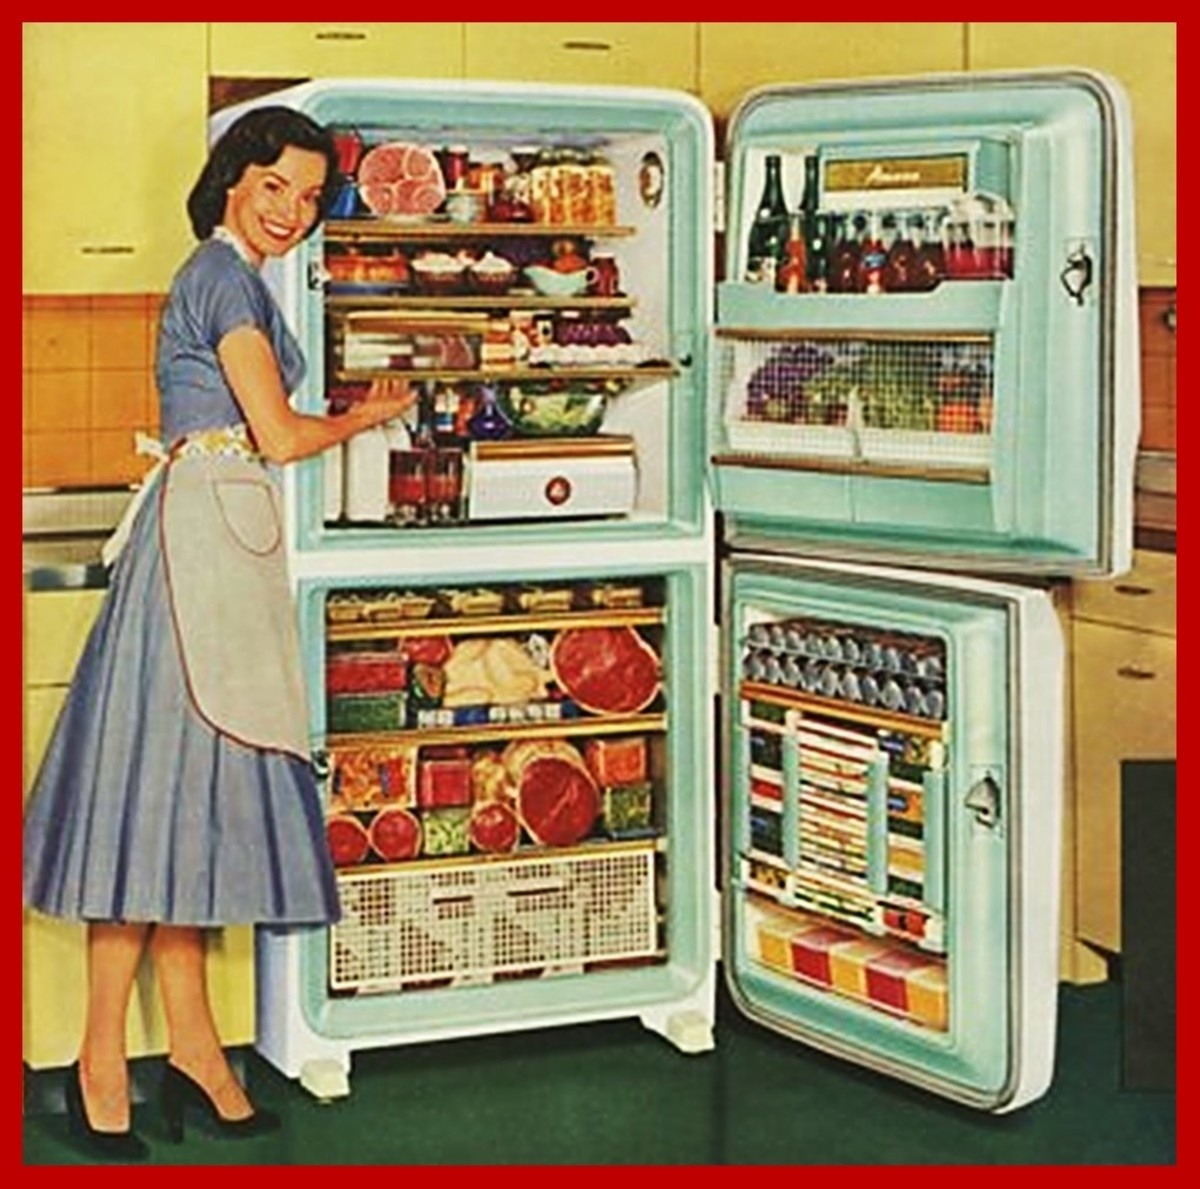 I'd be happy, too, if my fridge were that full!